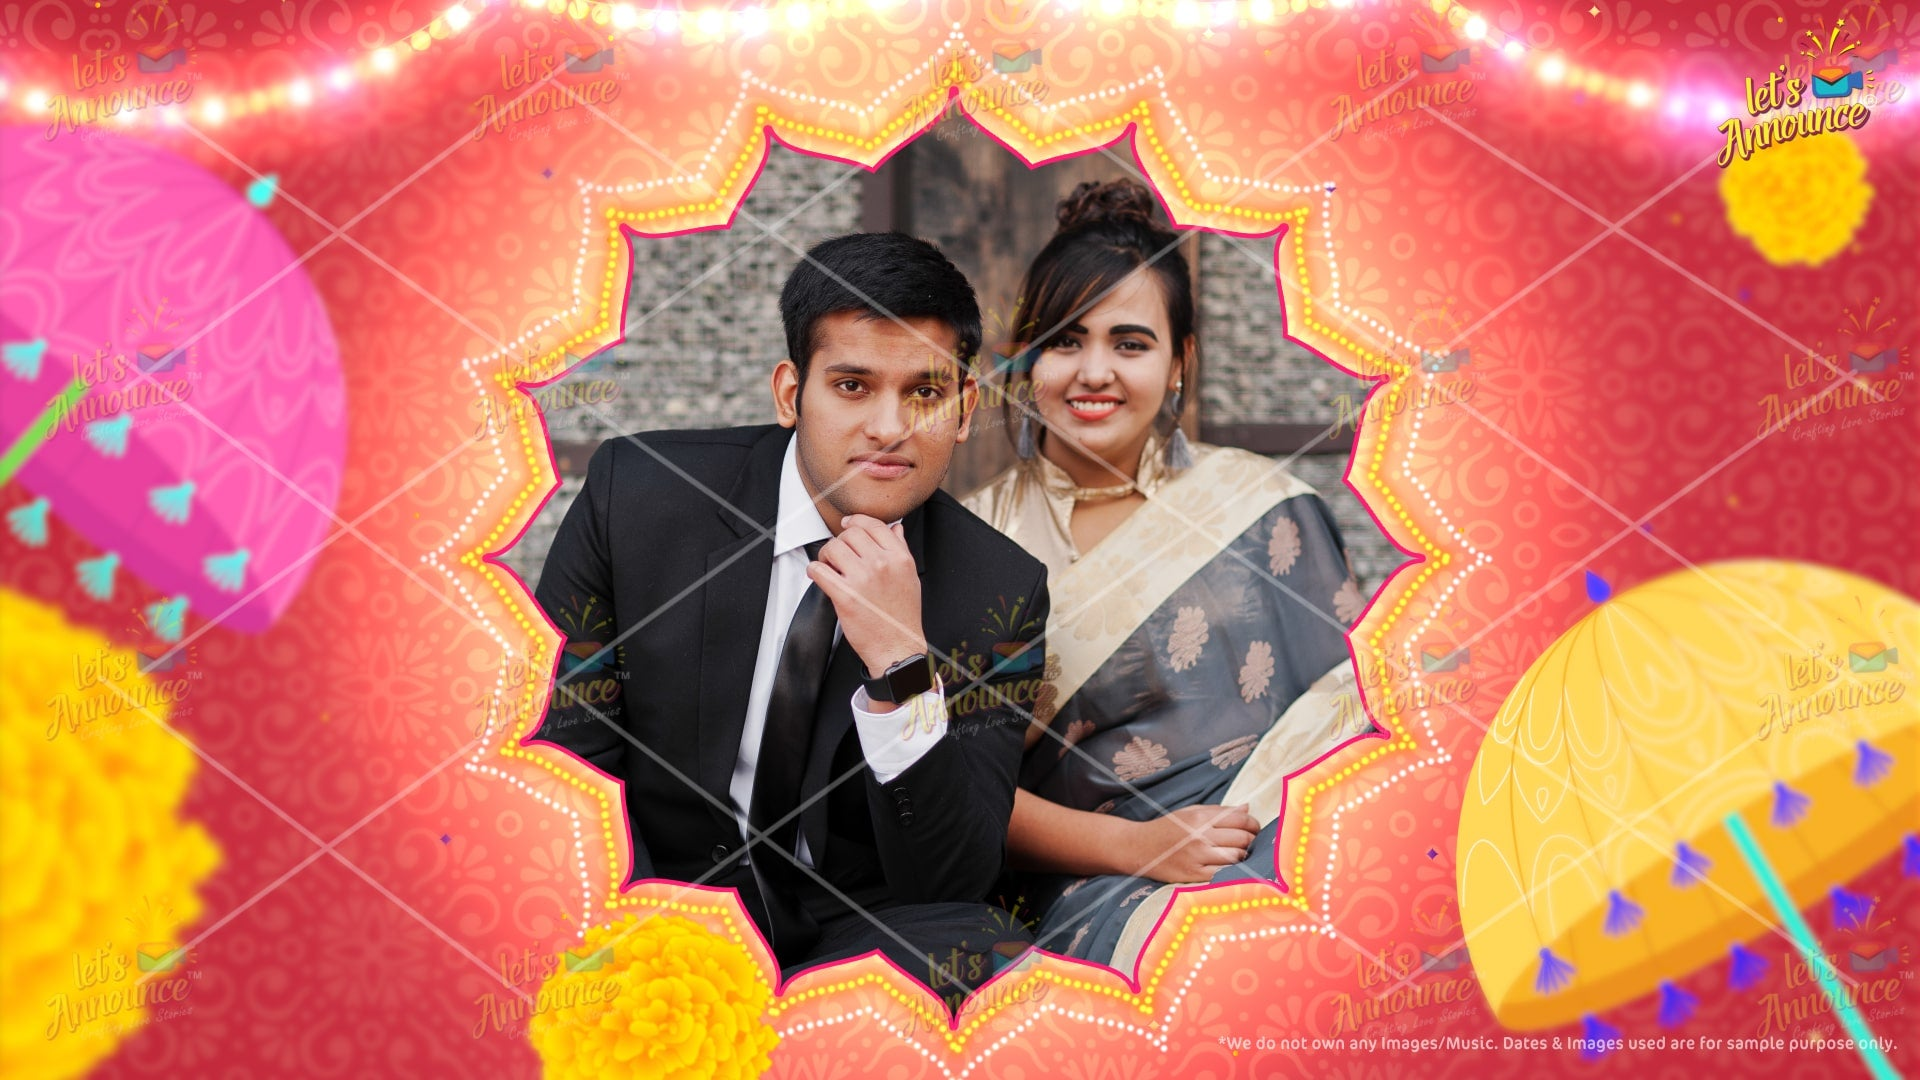 Indian Wedding Invitation by www.letsannounc.com